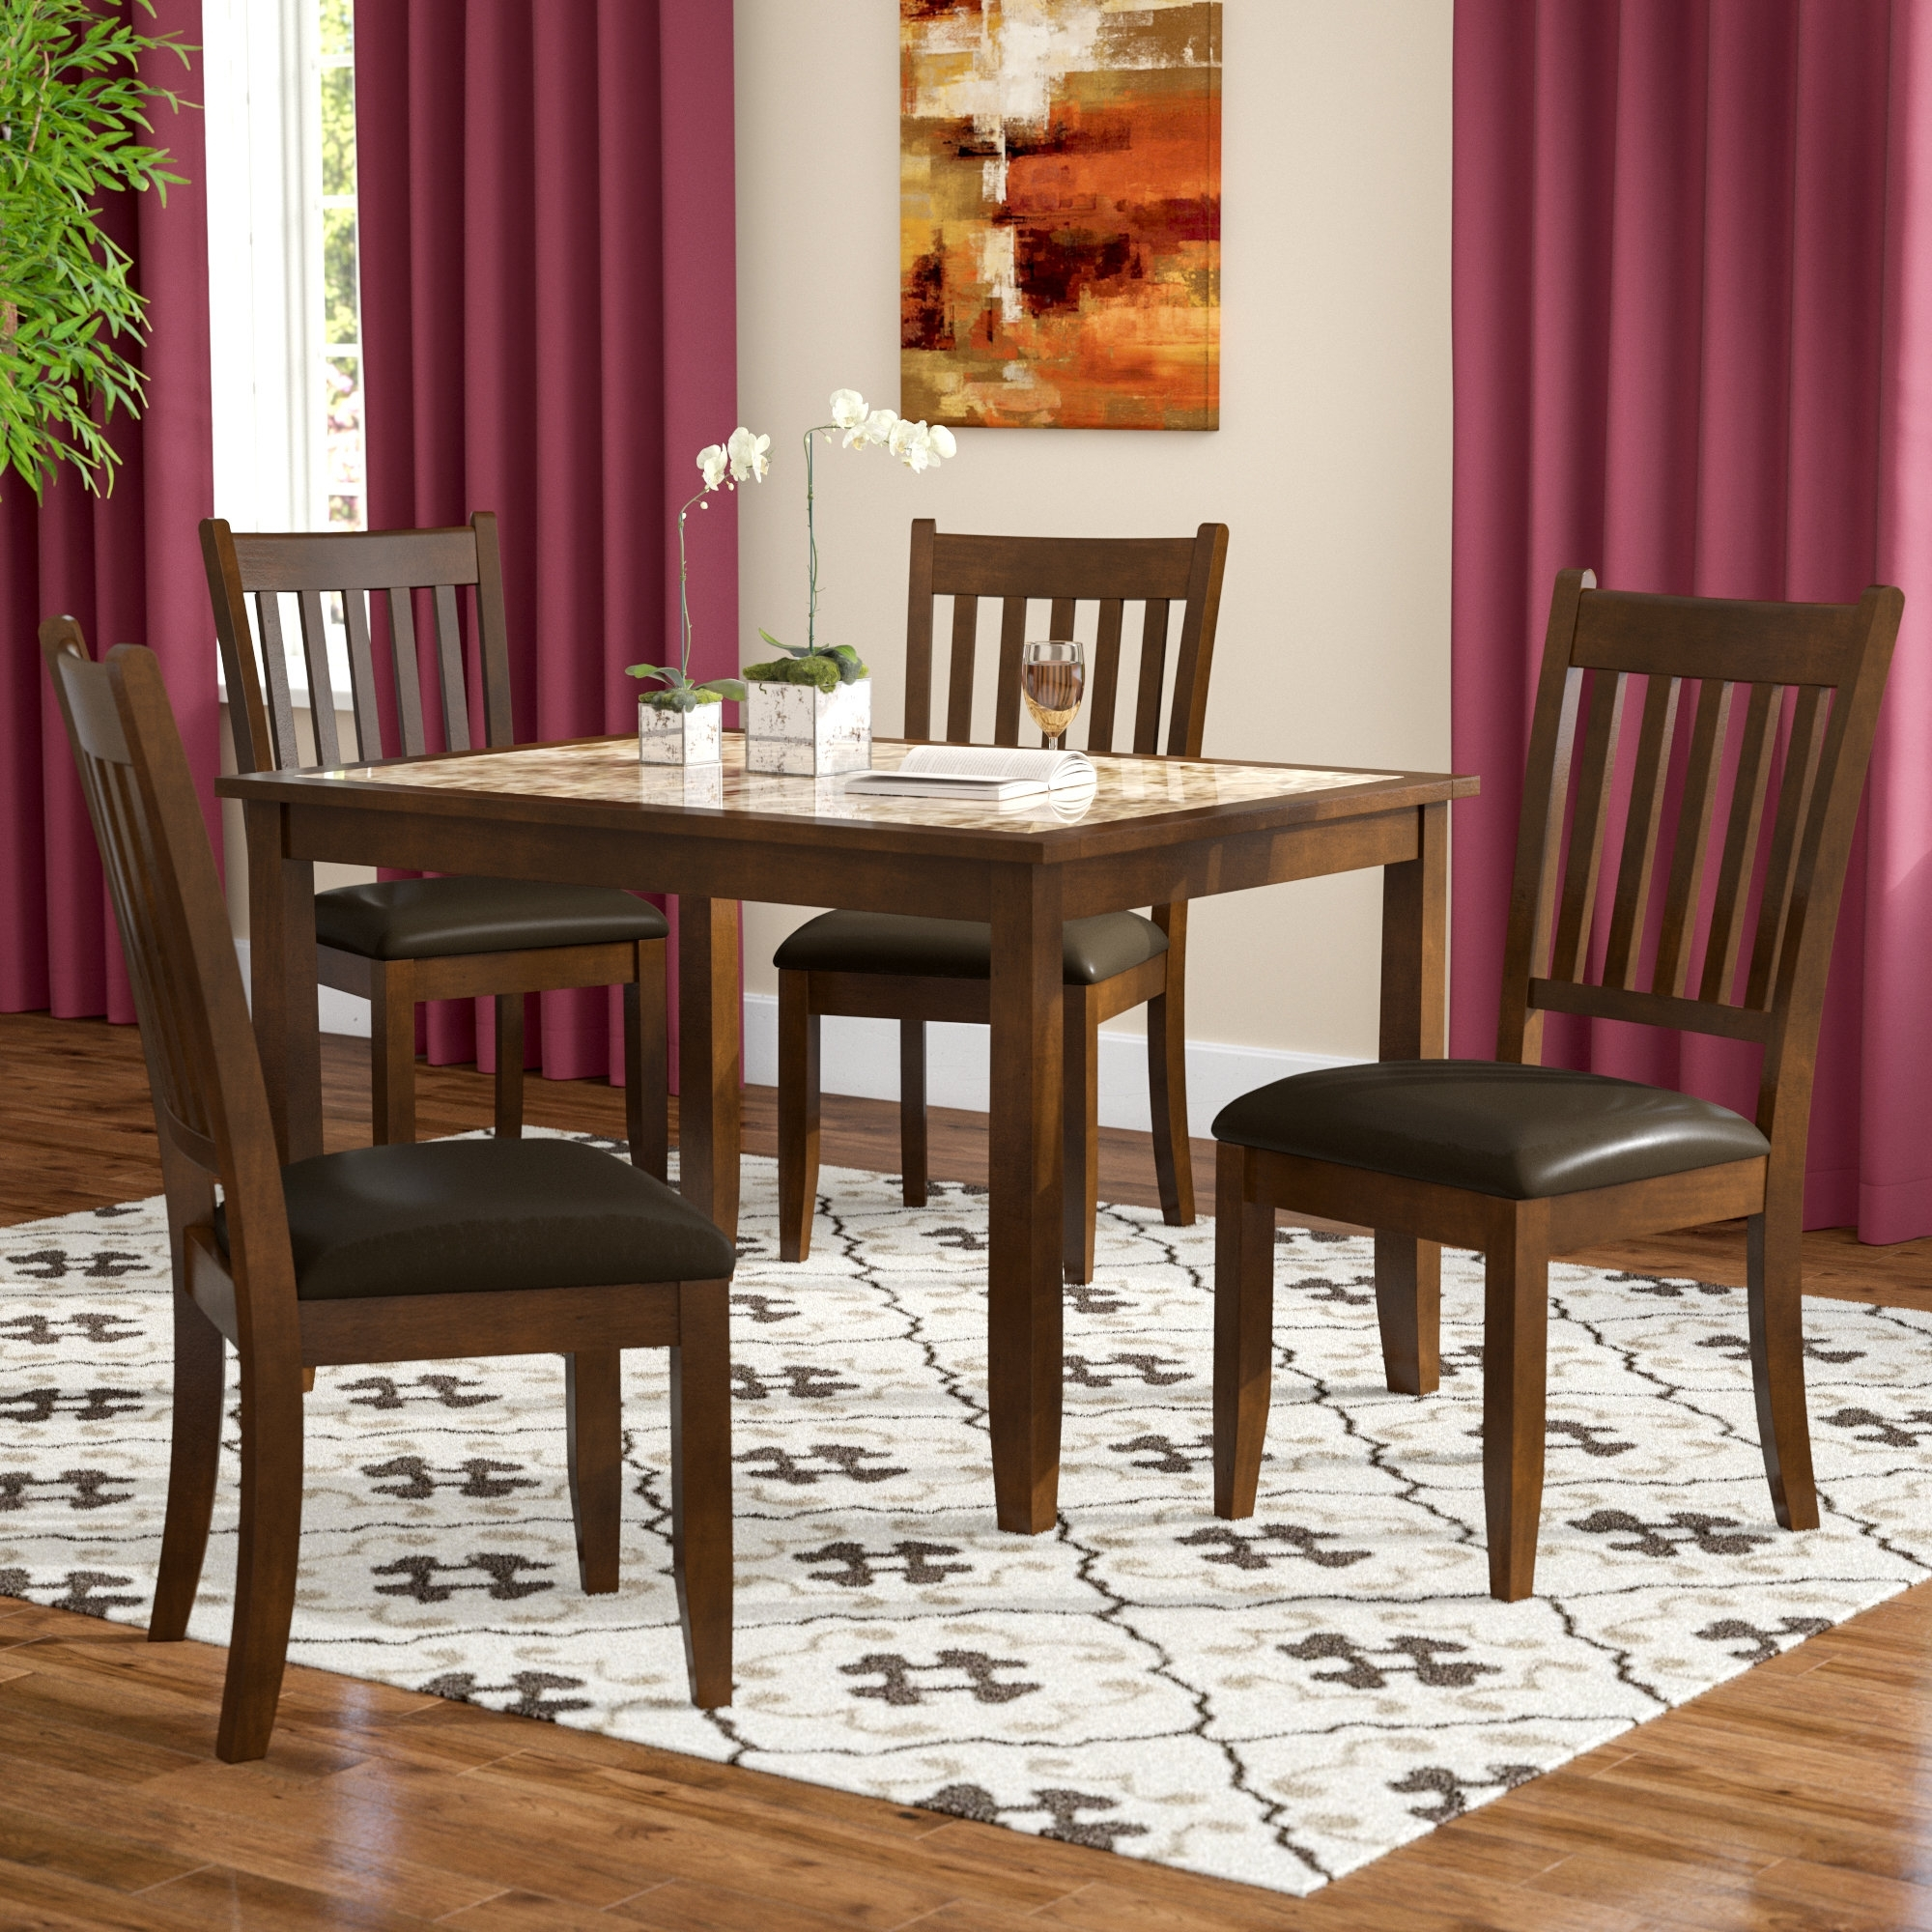 Wayfair With Recent Craftsman 5 Piece Round Dining Sets With Side Chairs (View 17 of 25)